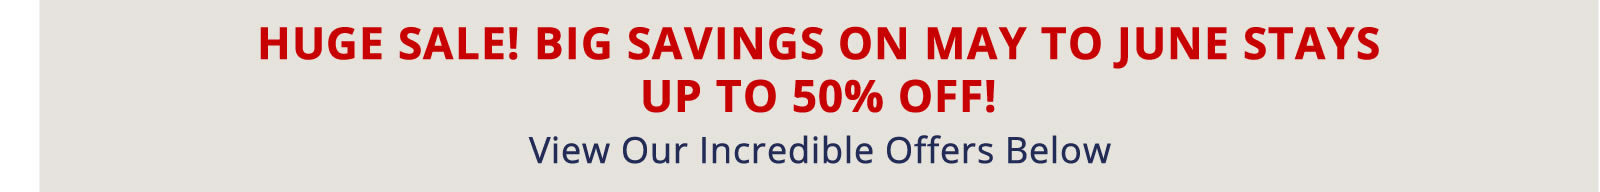 Book Now for Big Savings on May to June Stays. Up to 50% off!